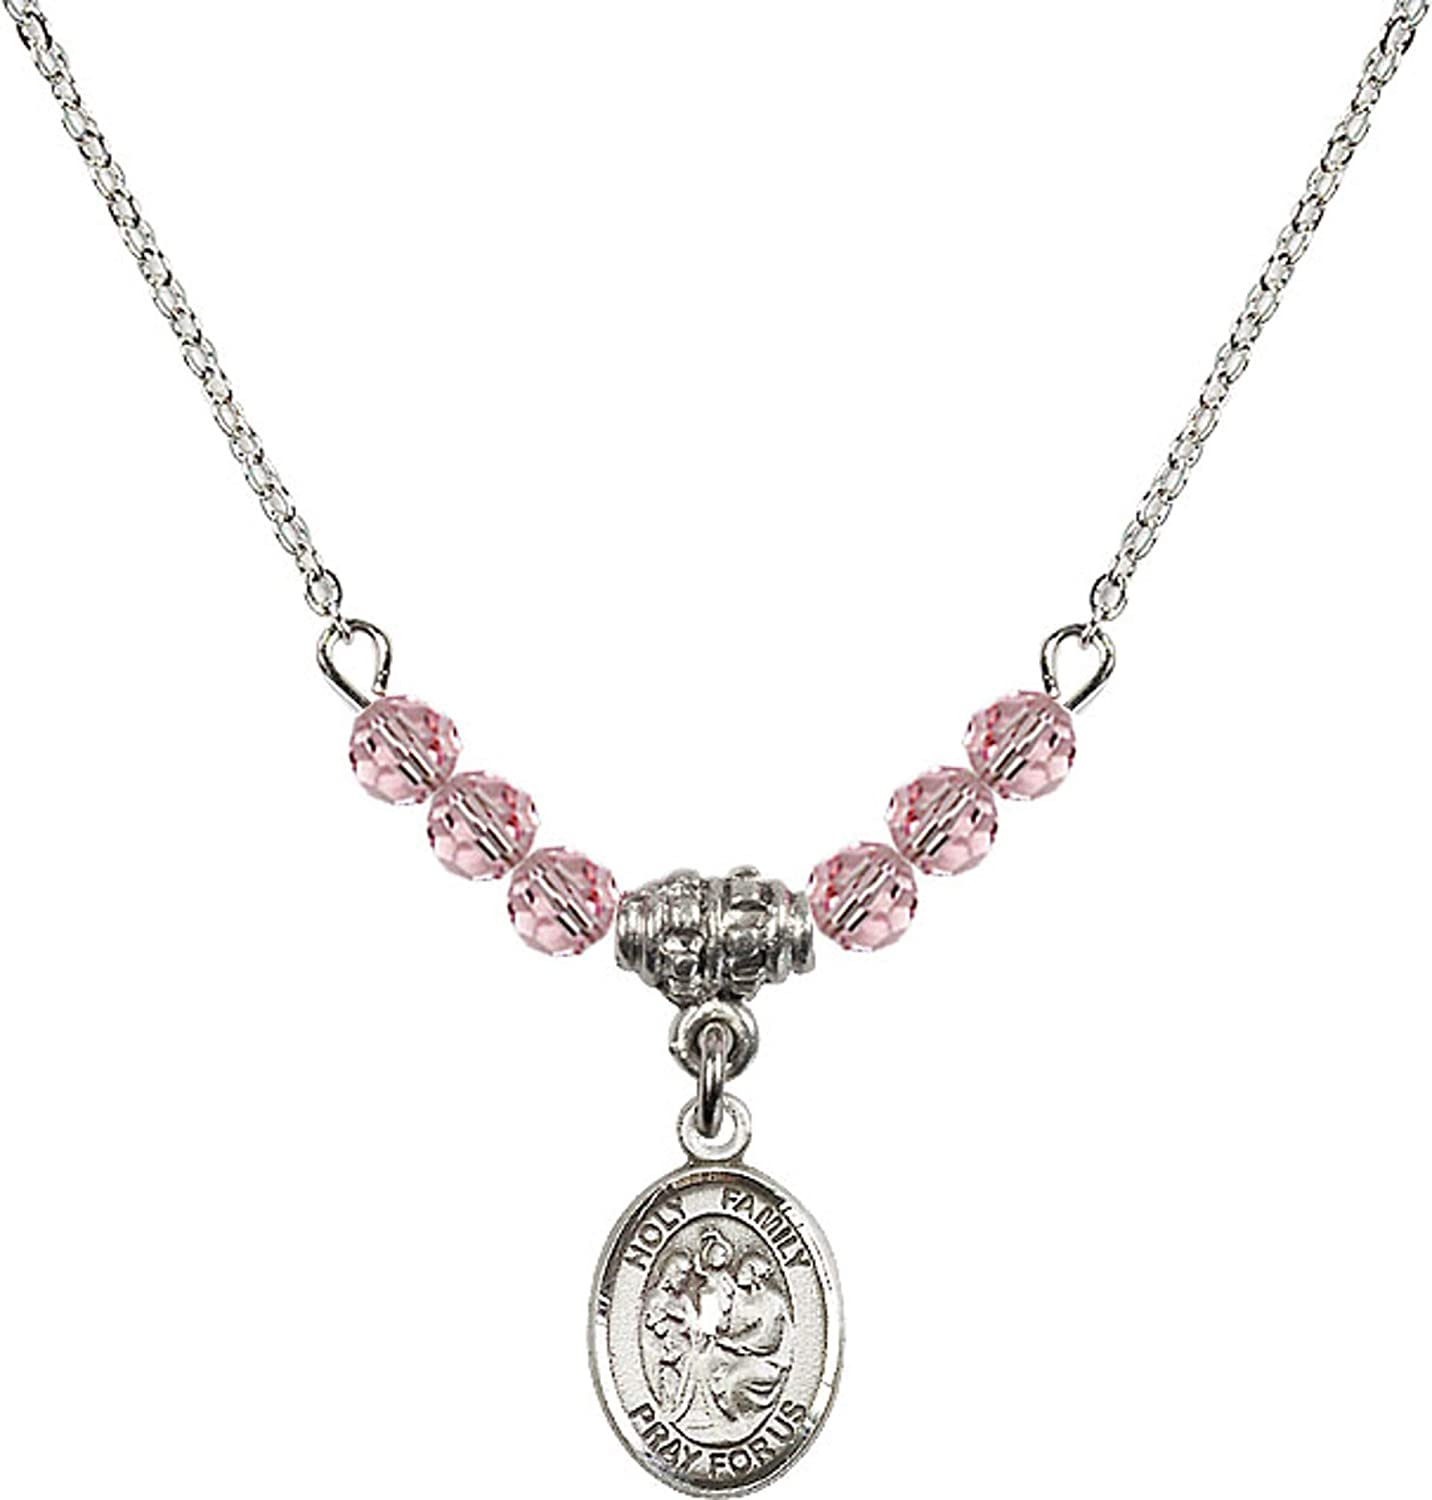 Bonyak Jewelry 18 Inch Rhodium Plated Necklace w// 4mm Light Rose Pink October Birth Month Stone Beads and Holy Family Charm